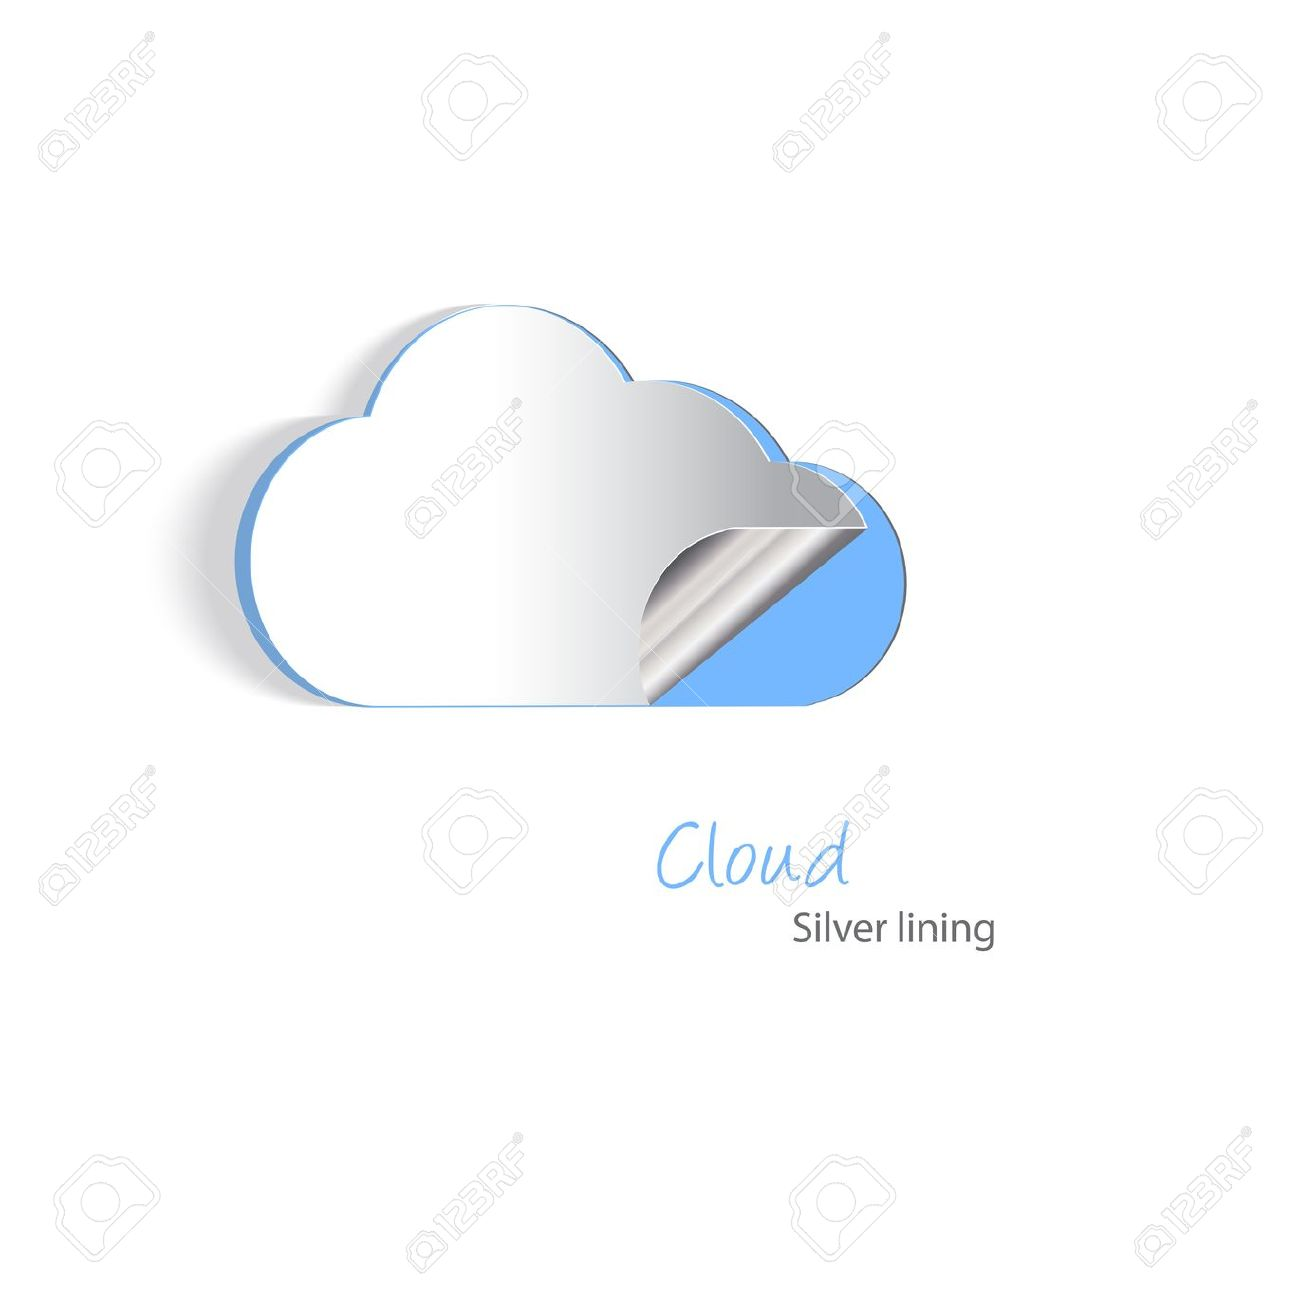 Paper Cutouts Of A Cloud With A Silver Lining. Cloud Hosting.